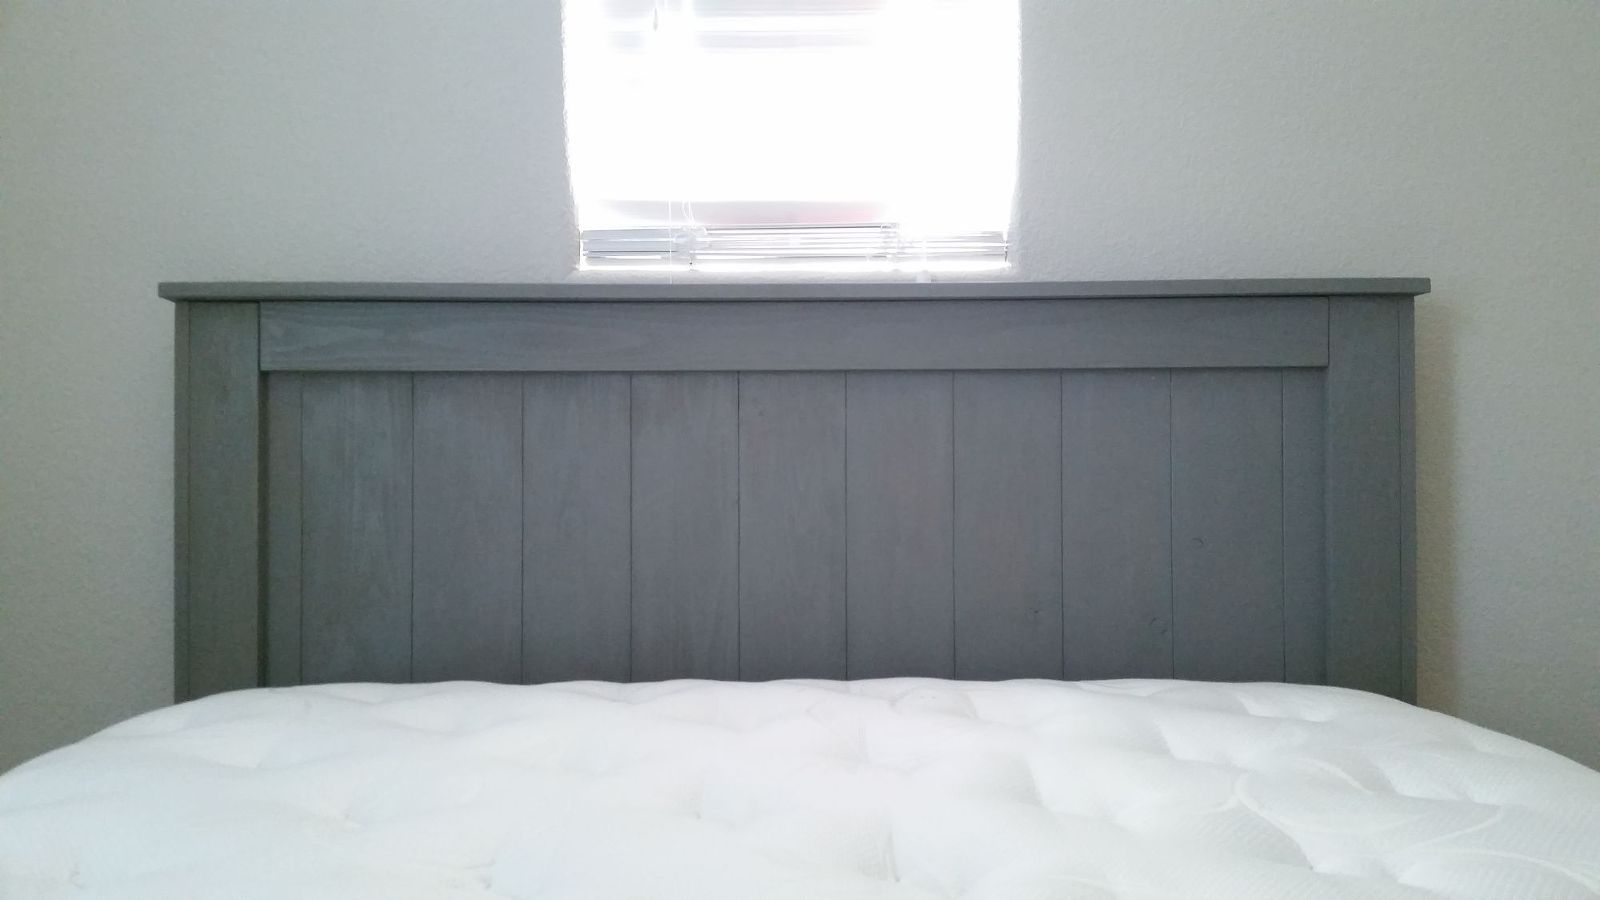 Diy Queen Headboard For 35 Queen Headboard Shiplap